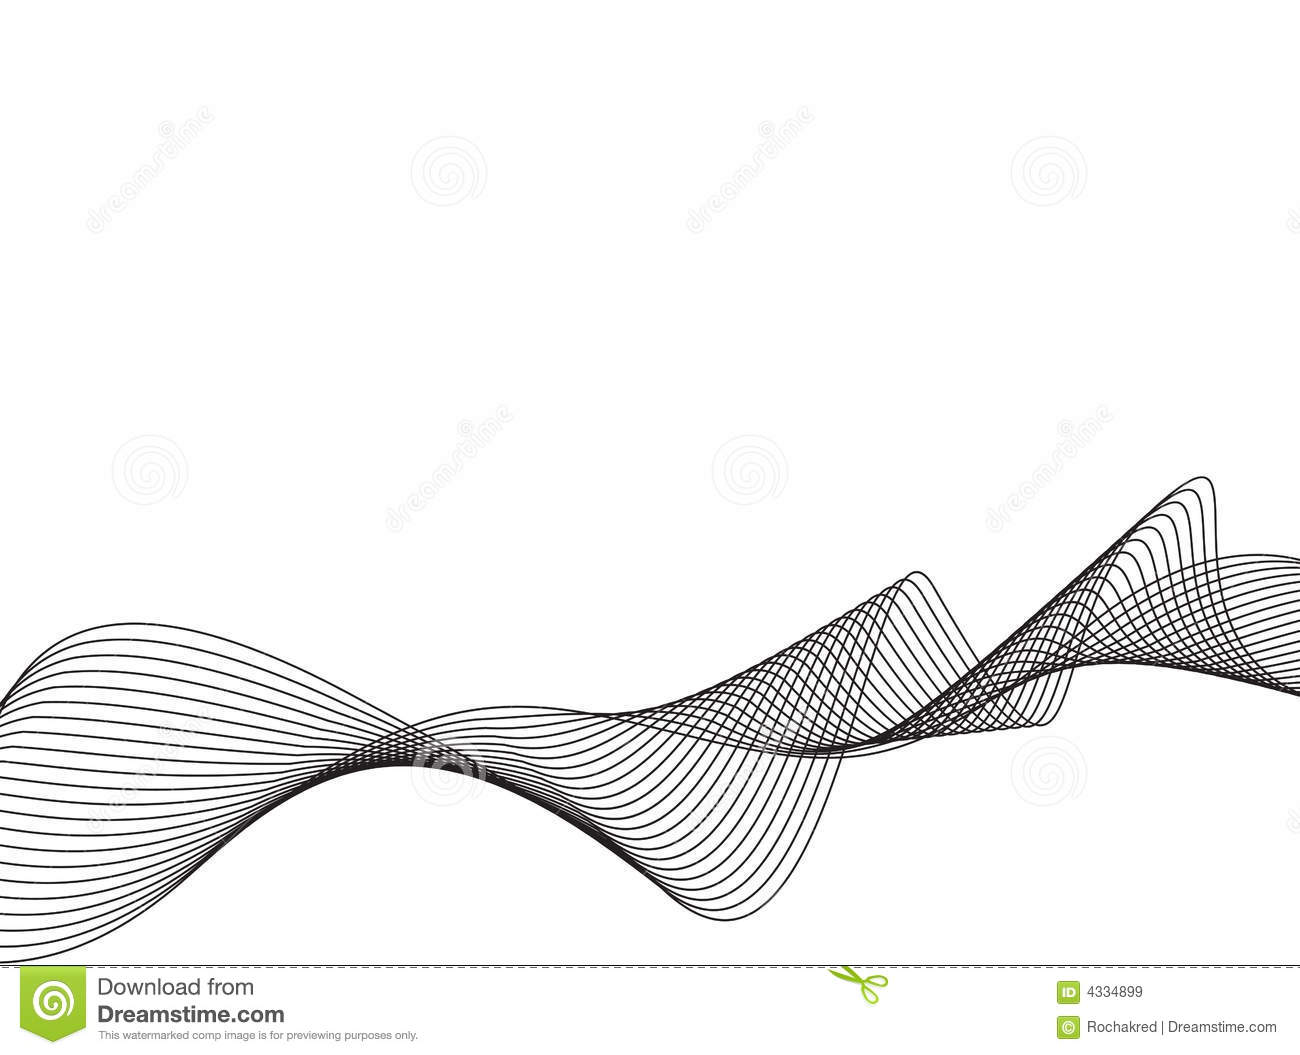 Vector Drawing Lines Download : Vector line art waves stock illustration of retro